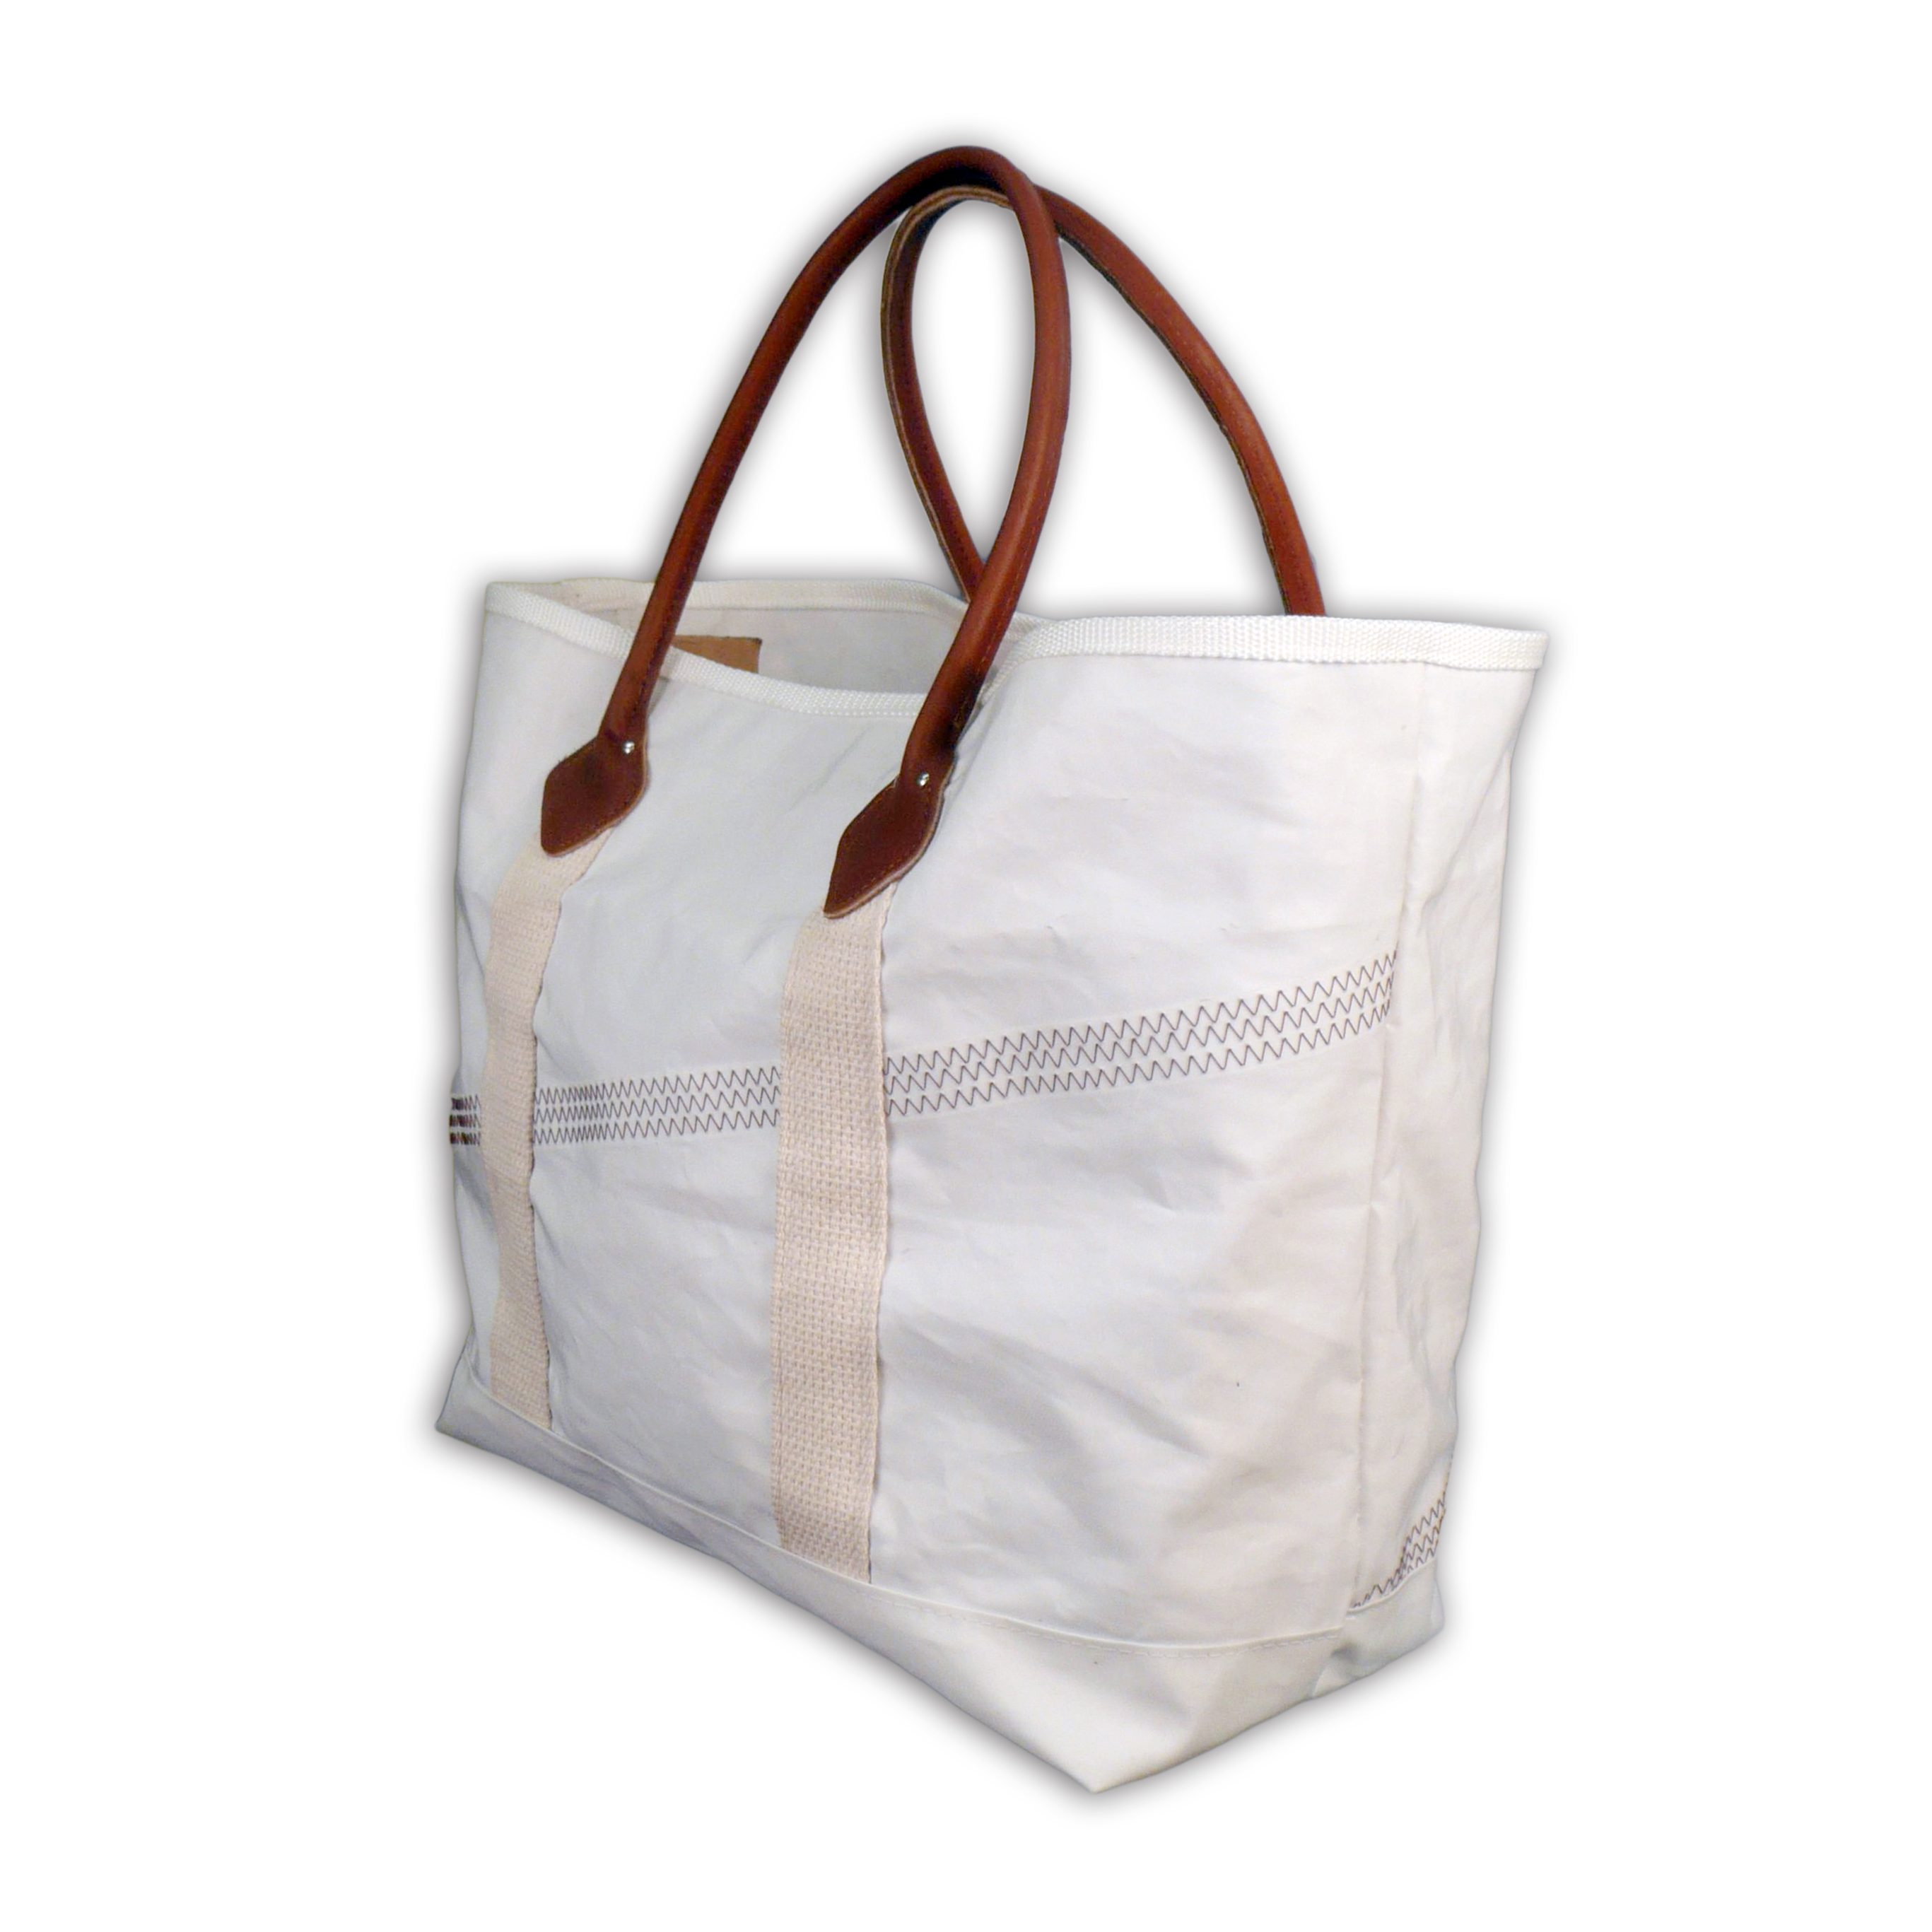 Upcycled Sailcloth Tote Bag with Leather Handles – Rhino Totes